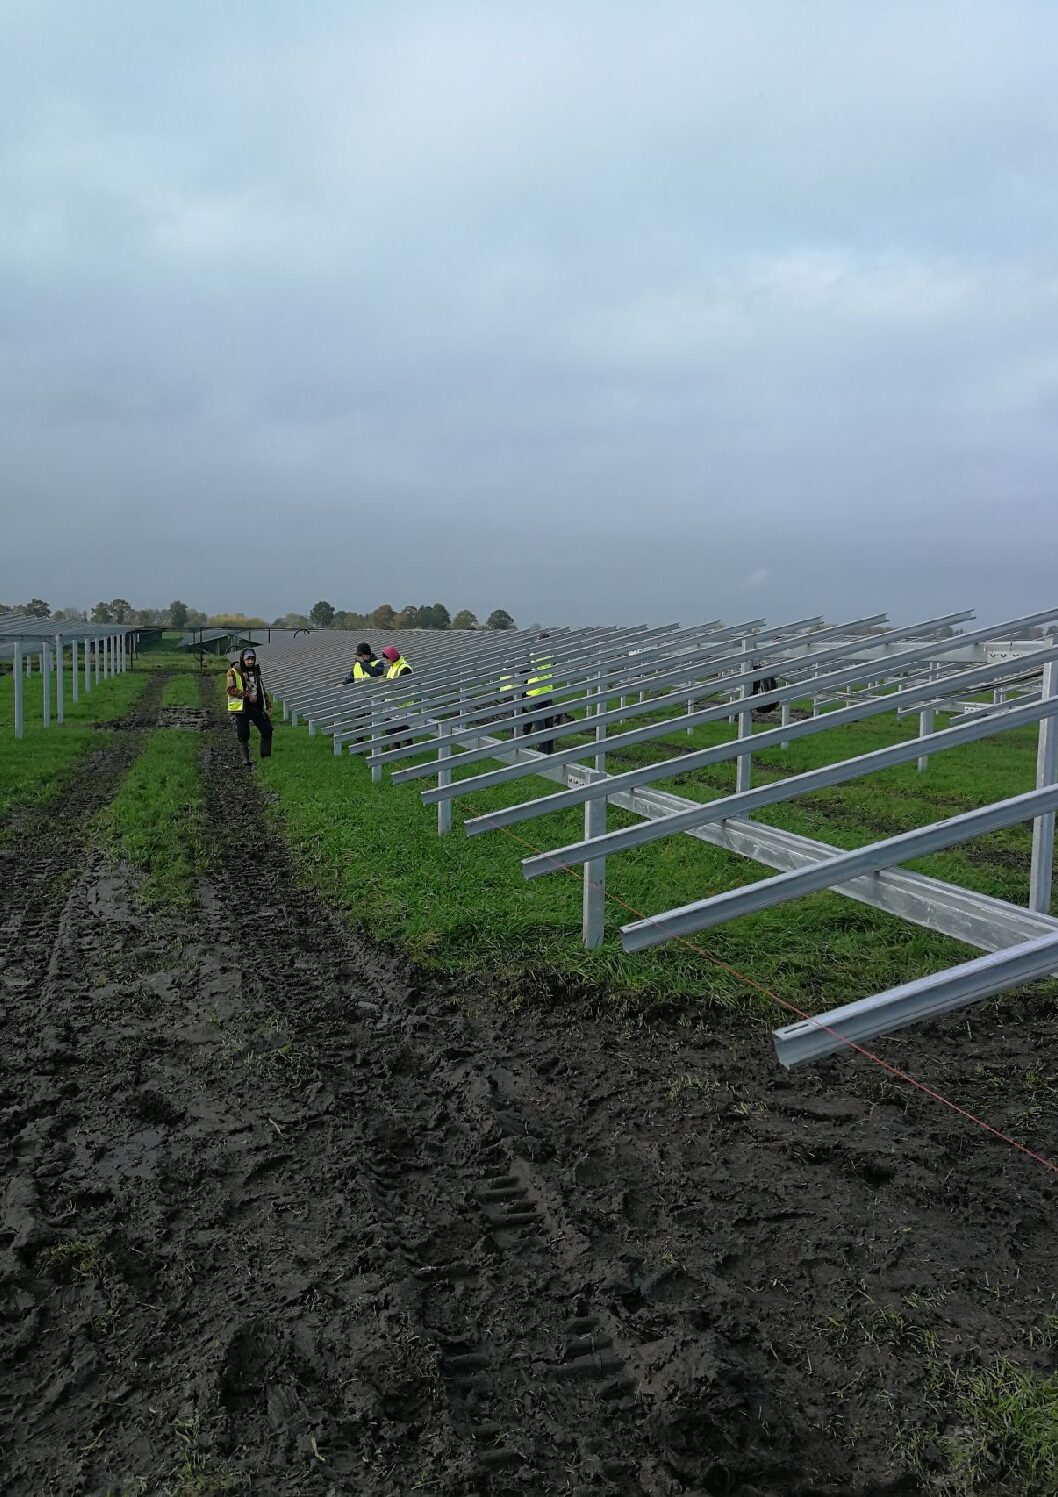 Progress of the project in Wolvega, Netherlands